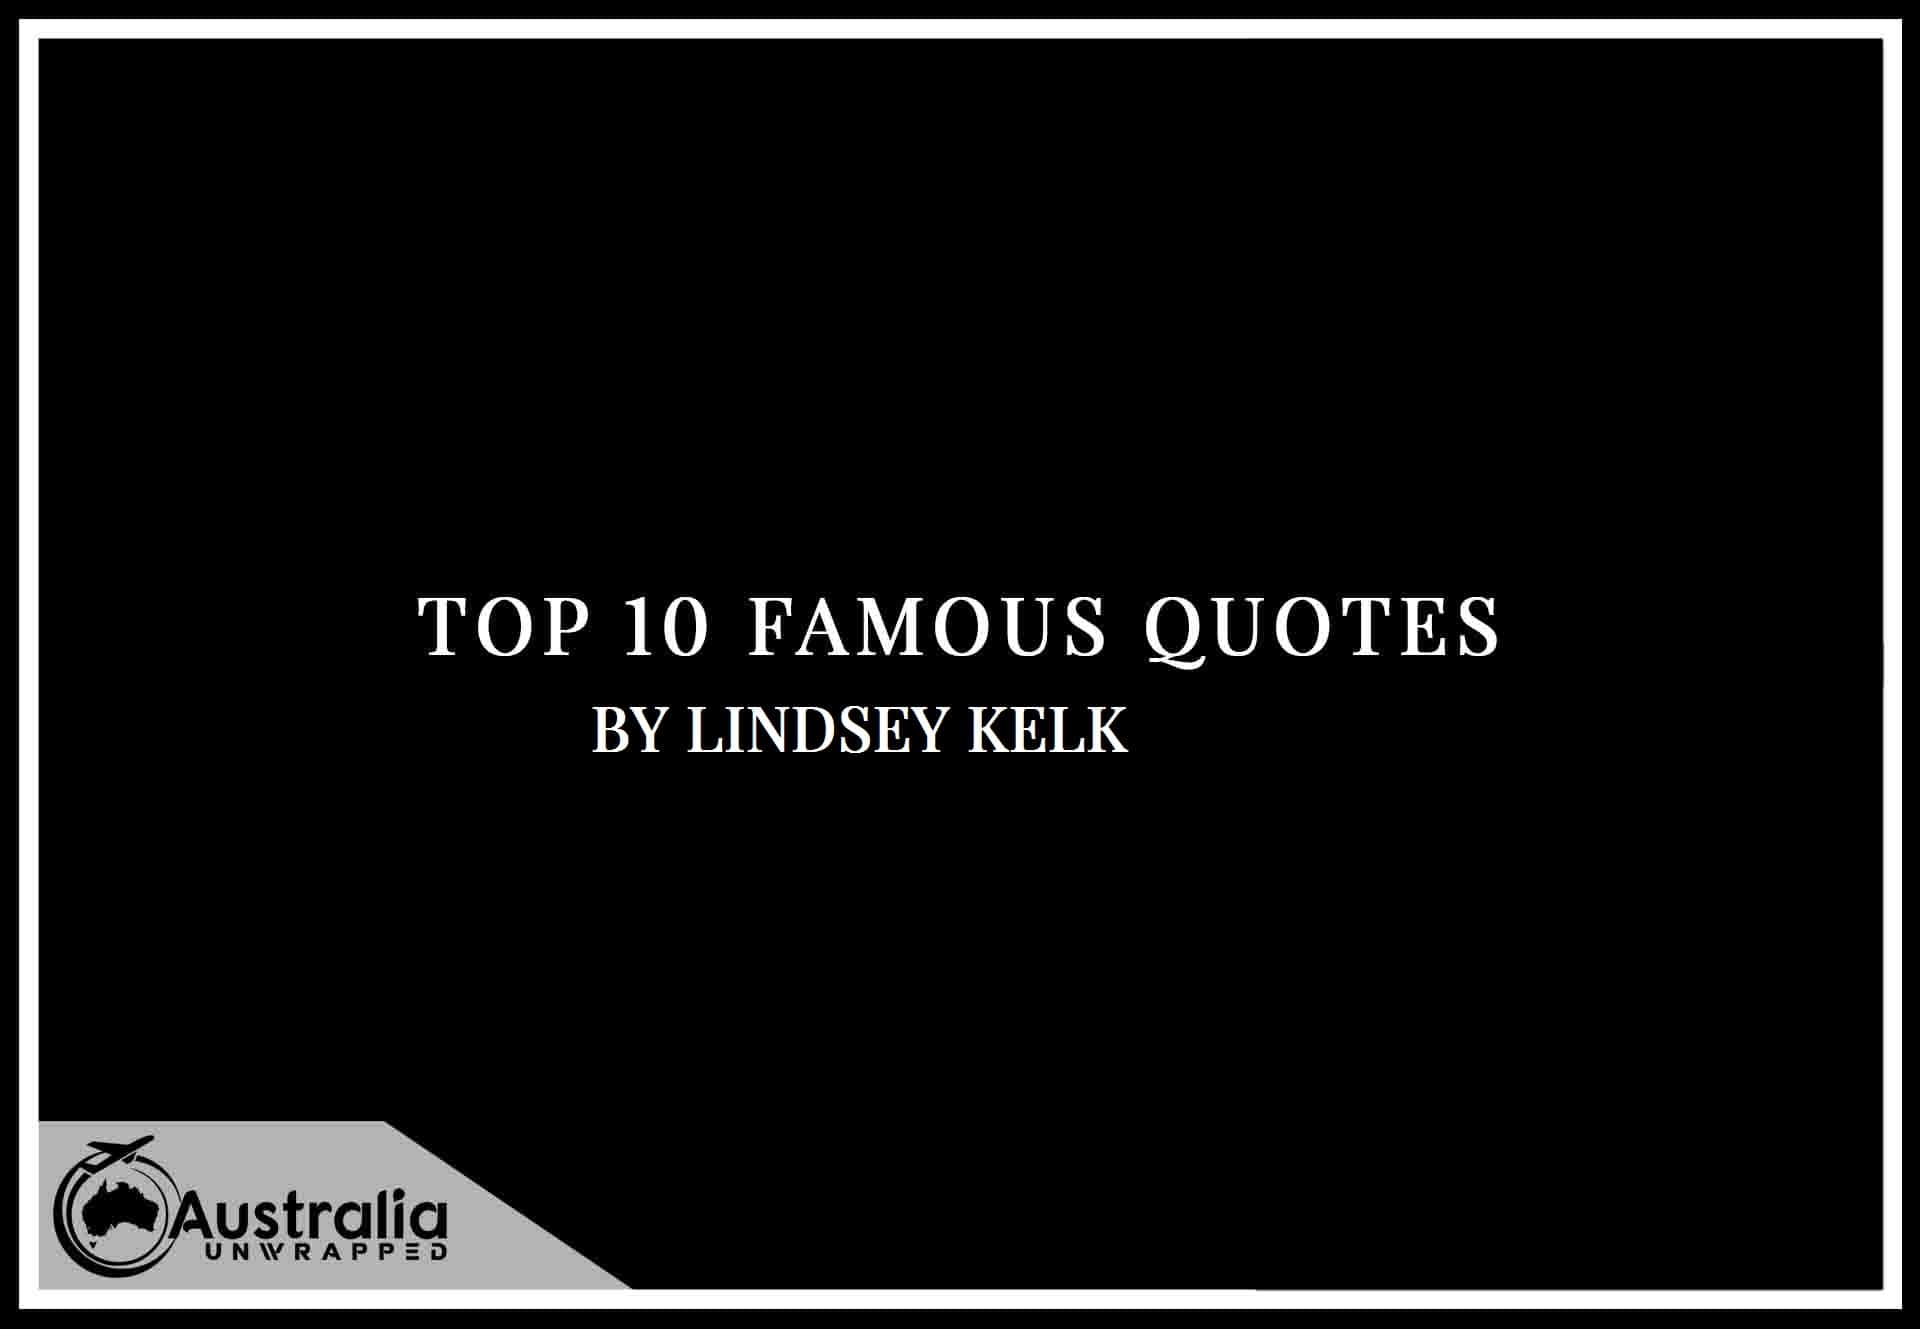 Lindsey Kelk's Top 10 Popular and Famous Quotes